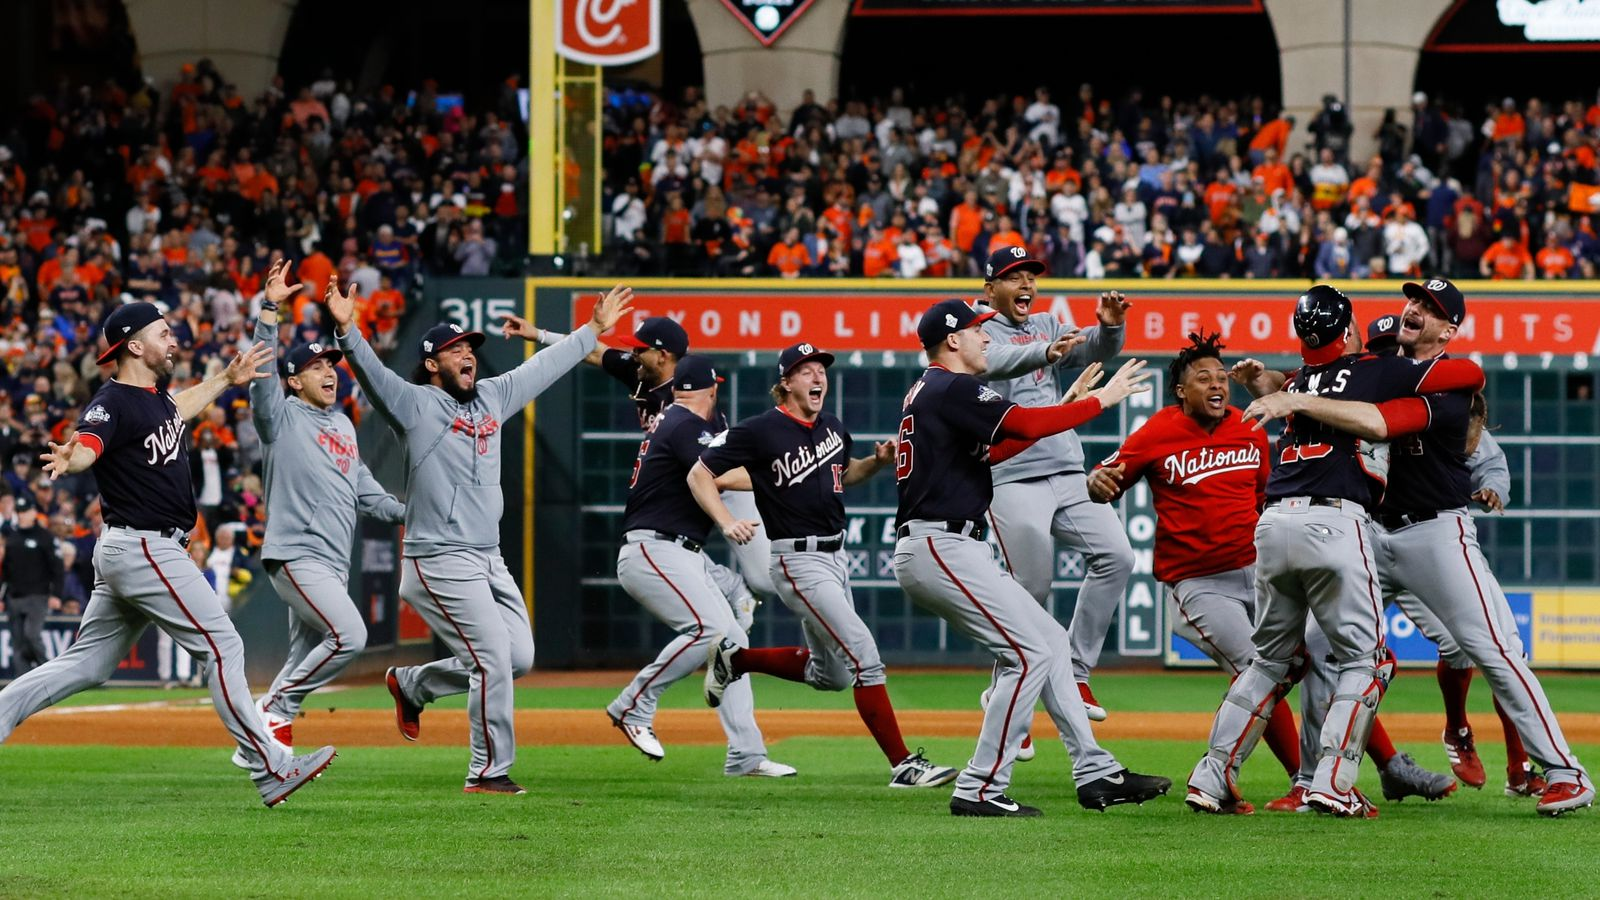 2020 mlb preview for every team in 60 words 2020 mlb preview for every team in 60 words